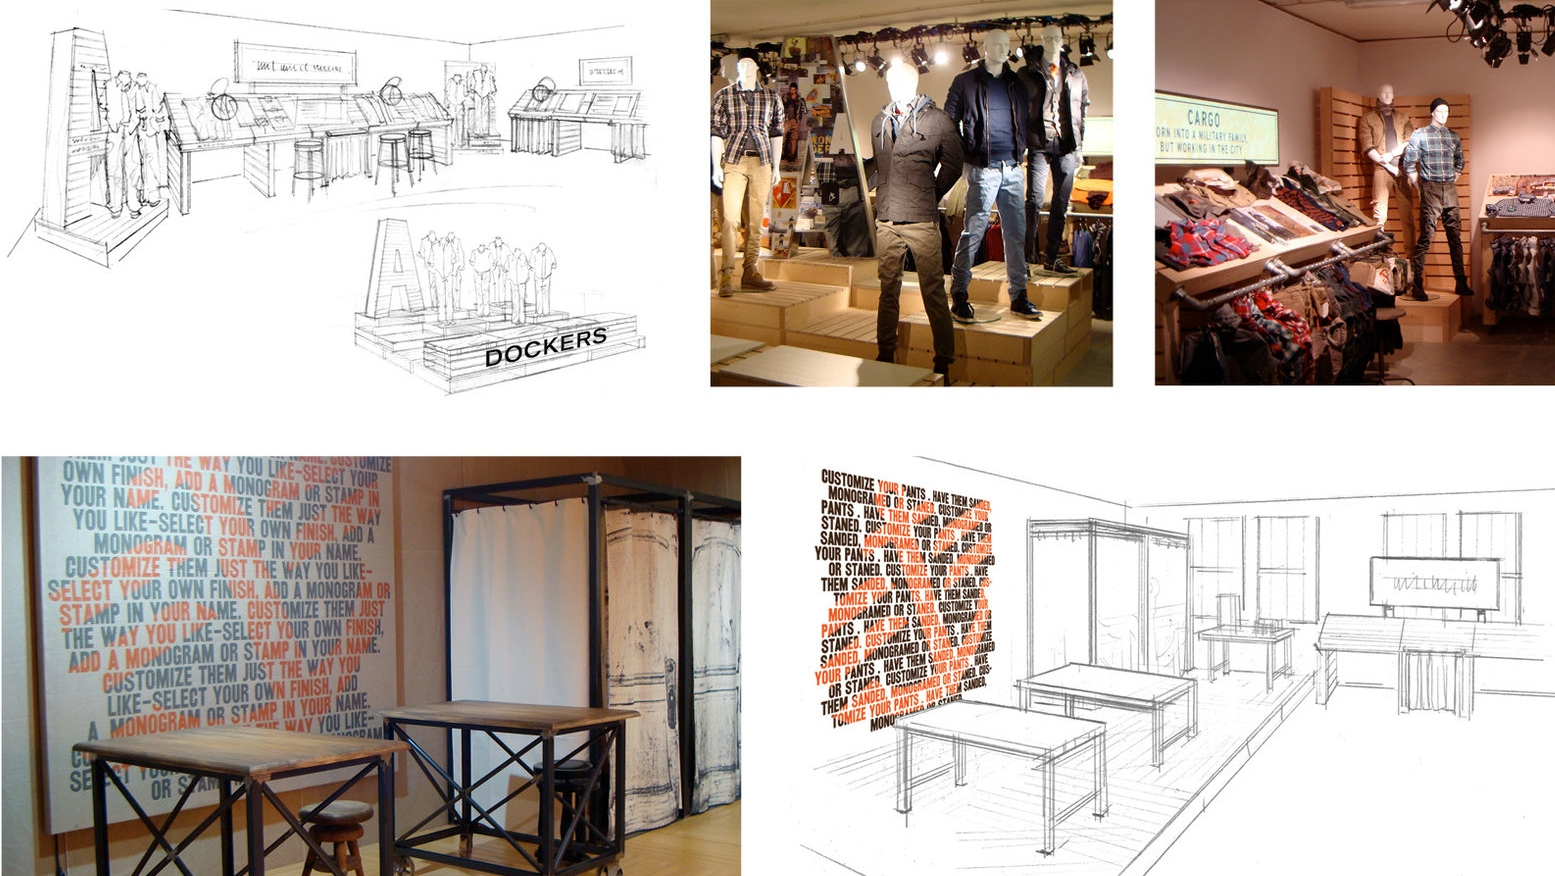 EU GO-TO-MARKET EVENTS - Inform the European retailers of the Fall 2011 line of Dockers khakis.Responsible for concept, graphics, layout and concept sketches.